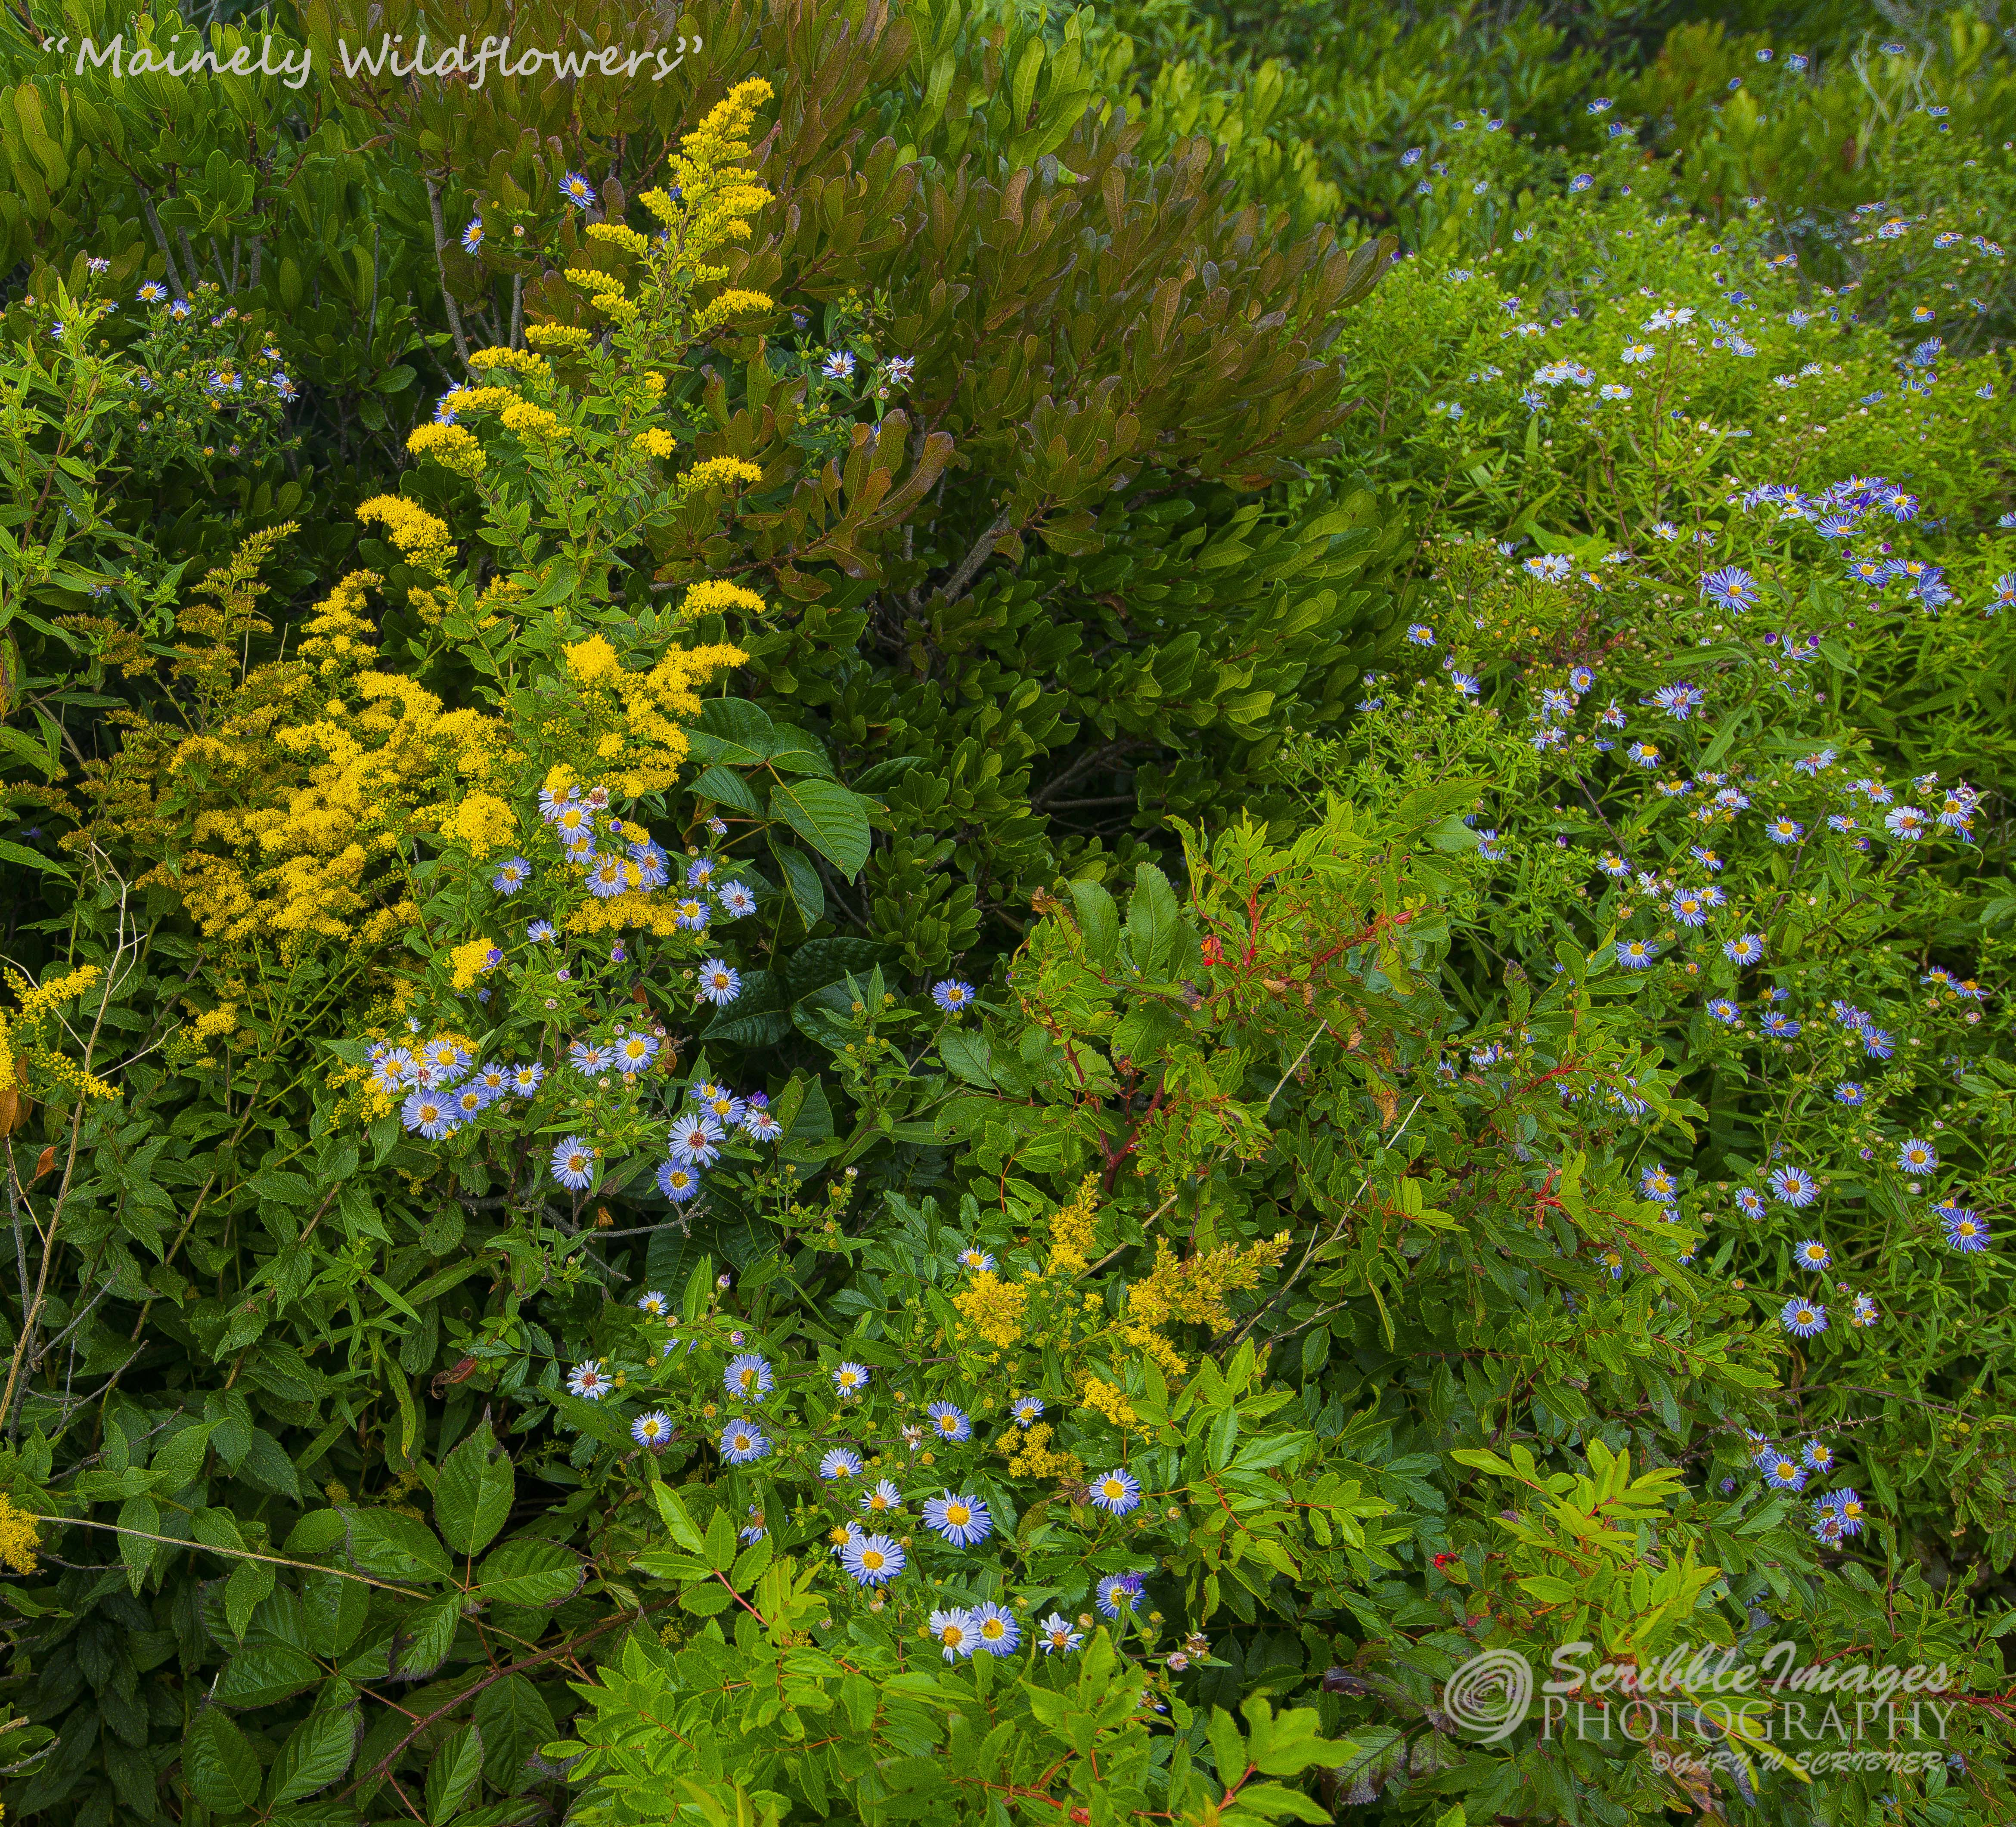 _D852700 Mainely Wildflowers3-5